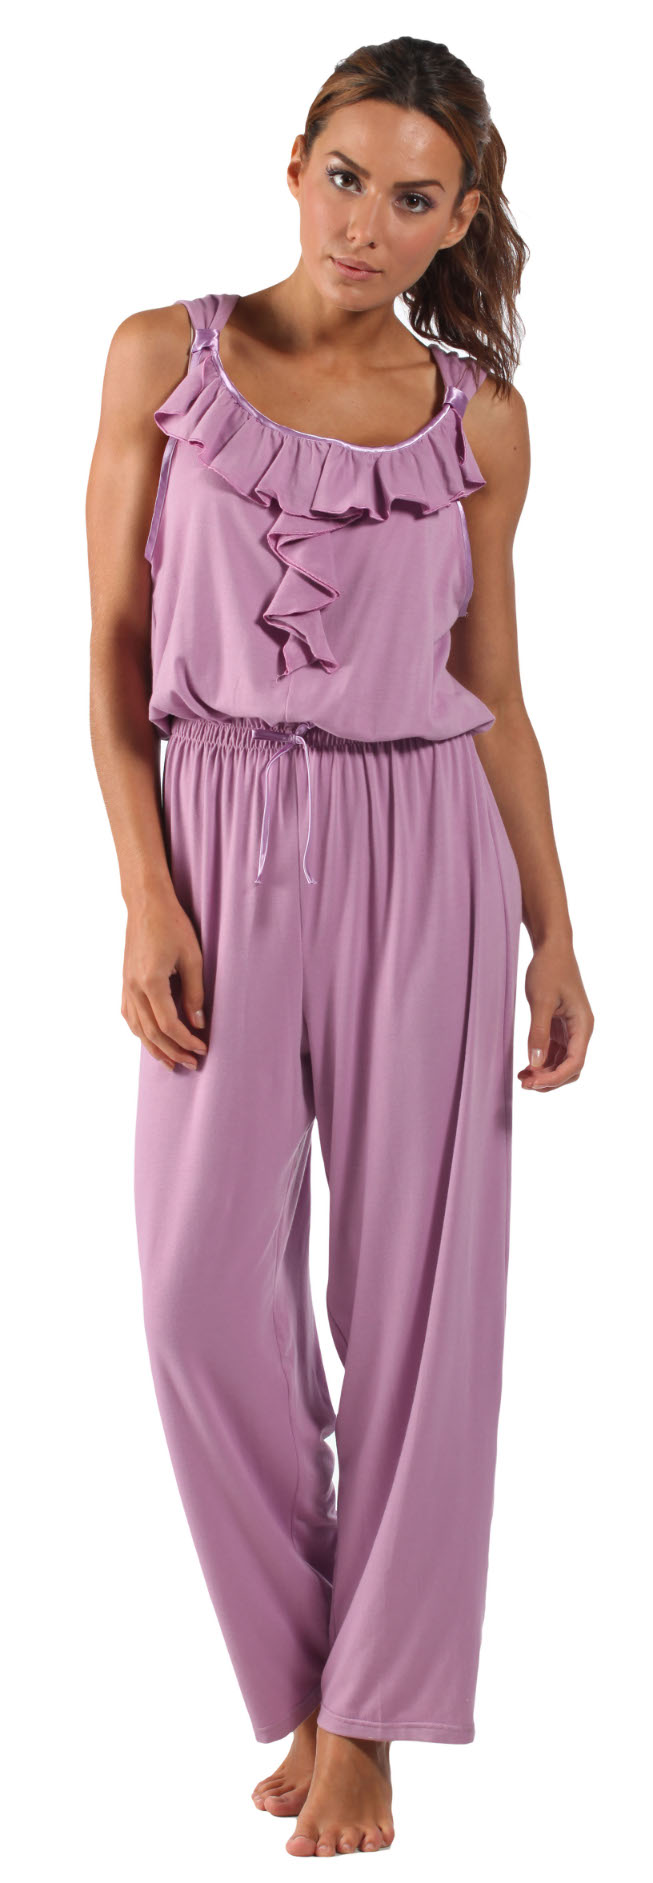 SLEEPWEAR + PAJAMAS. Tall sleepwear so good, you'll never want to get dressed. Supersoft robes, checked PJ pants and stylish matching sets - all in a length you'll love. Sweet dreams, indeed.